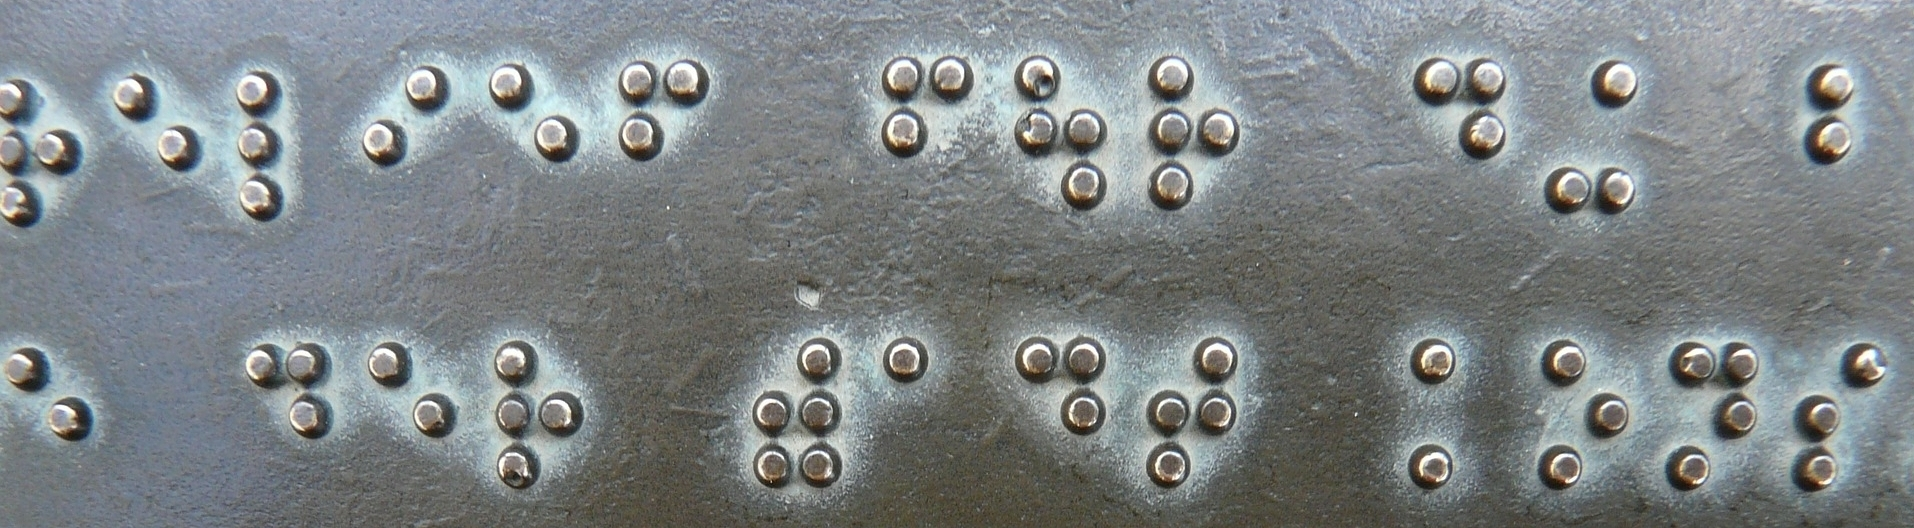 Photograph: Picture of well-used Braille letters embossed in a metal sign.